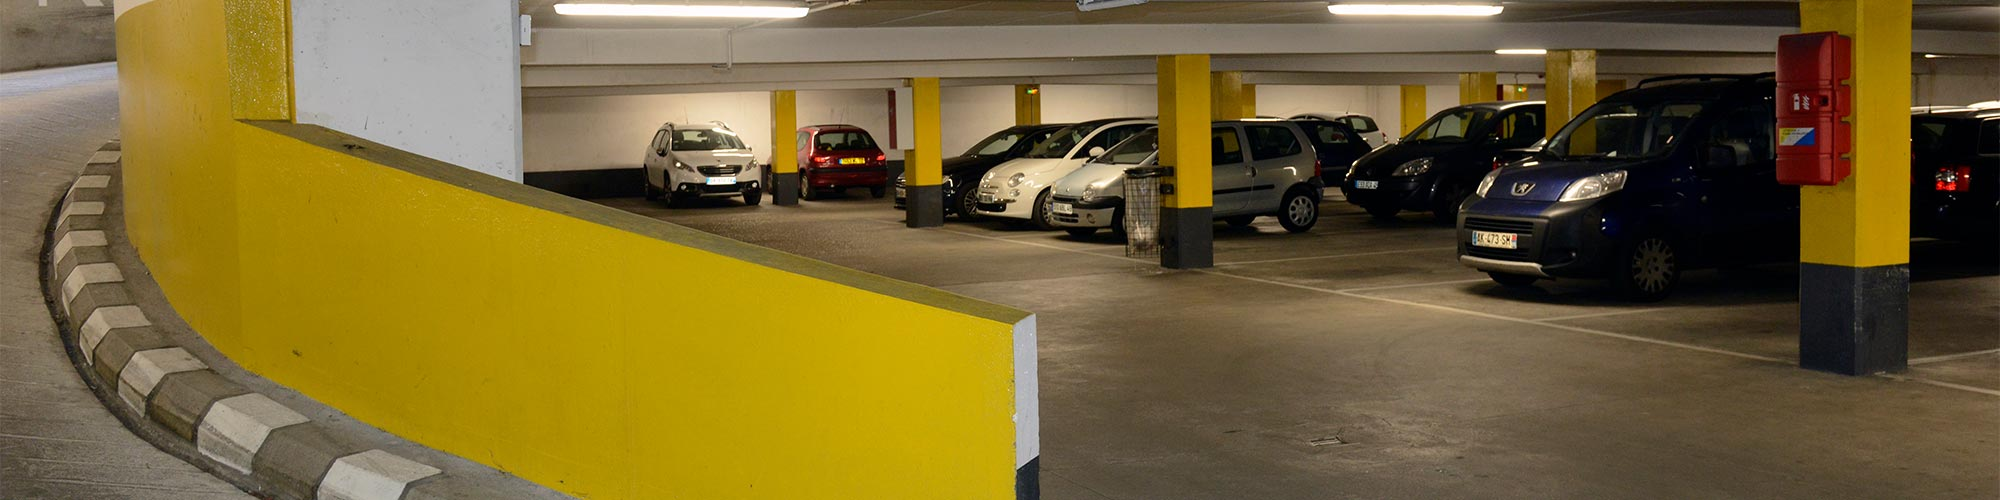 parking-bressigny-angers